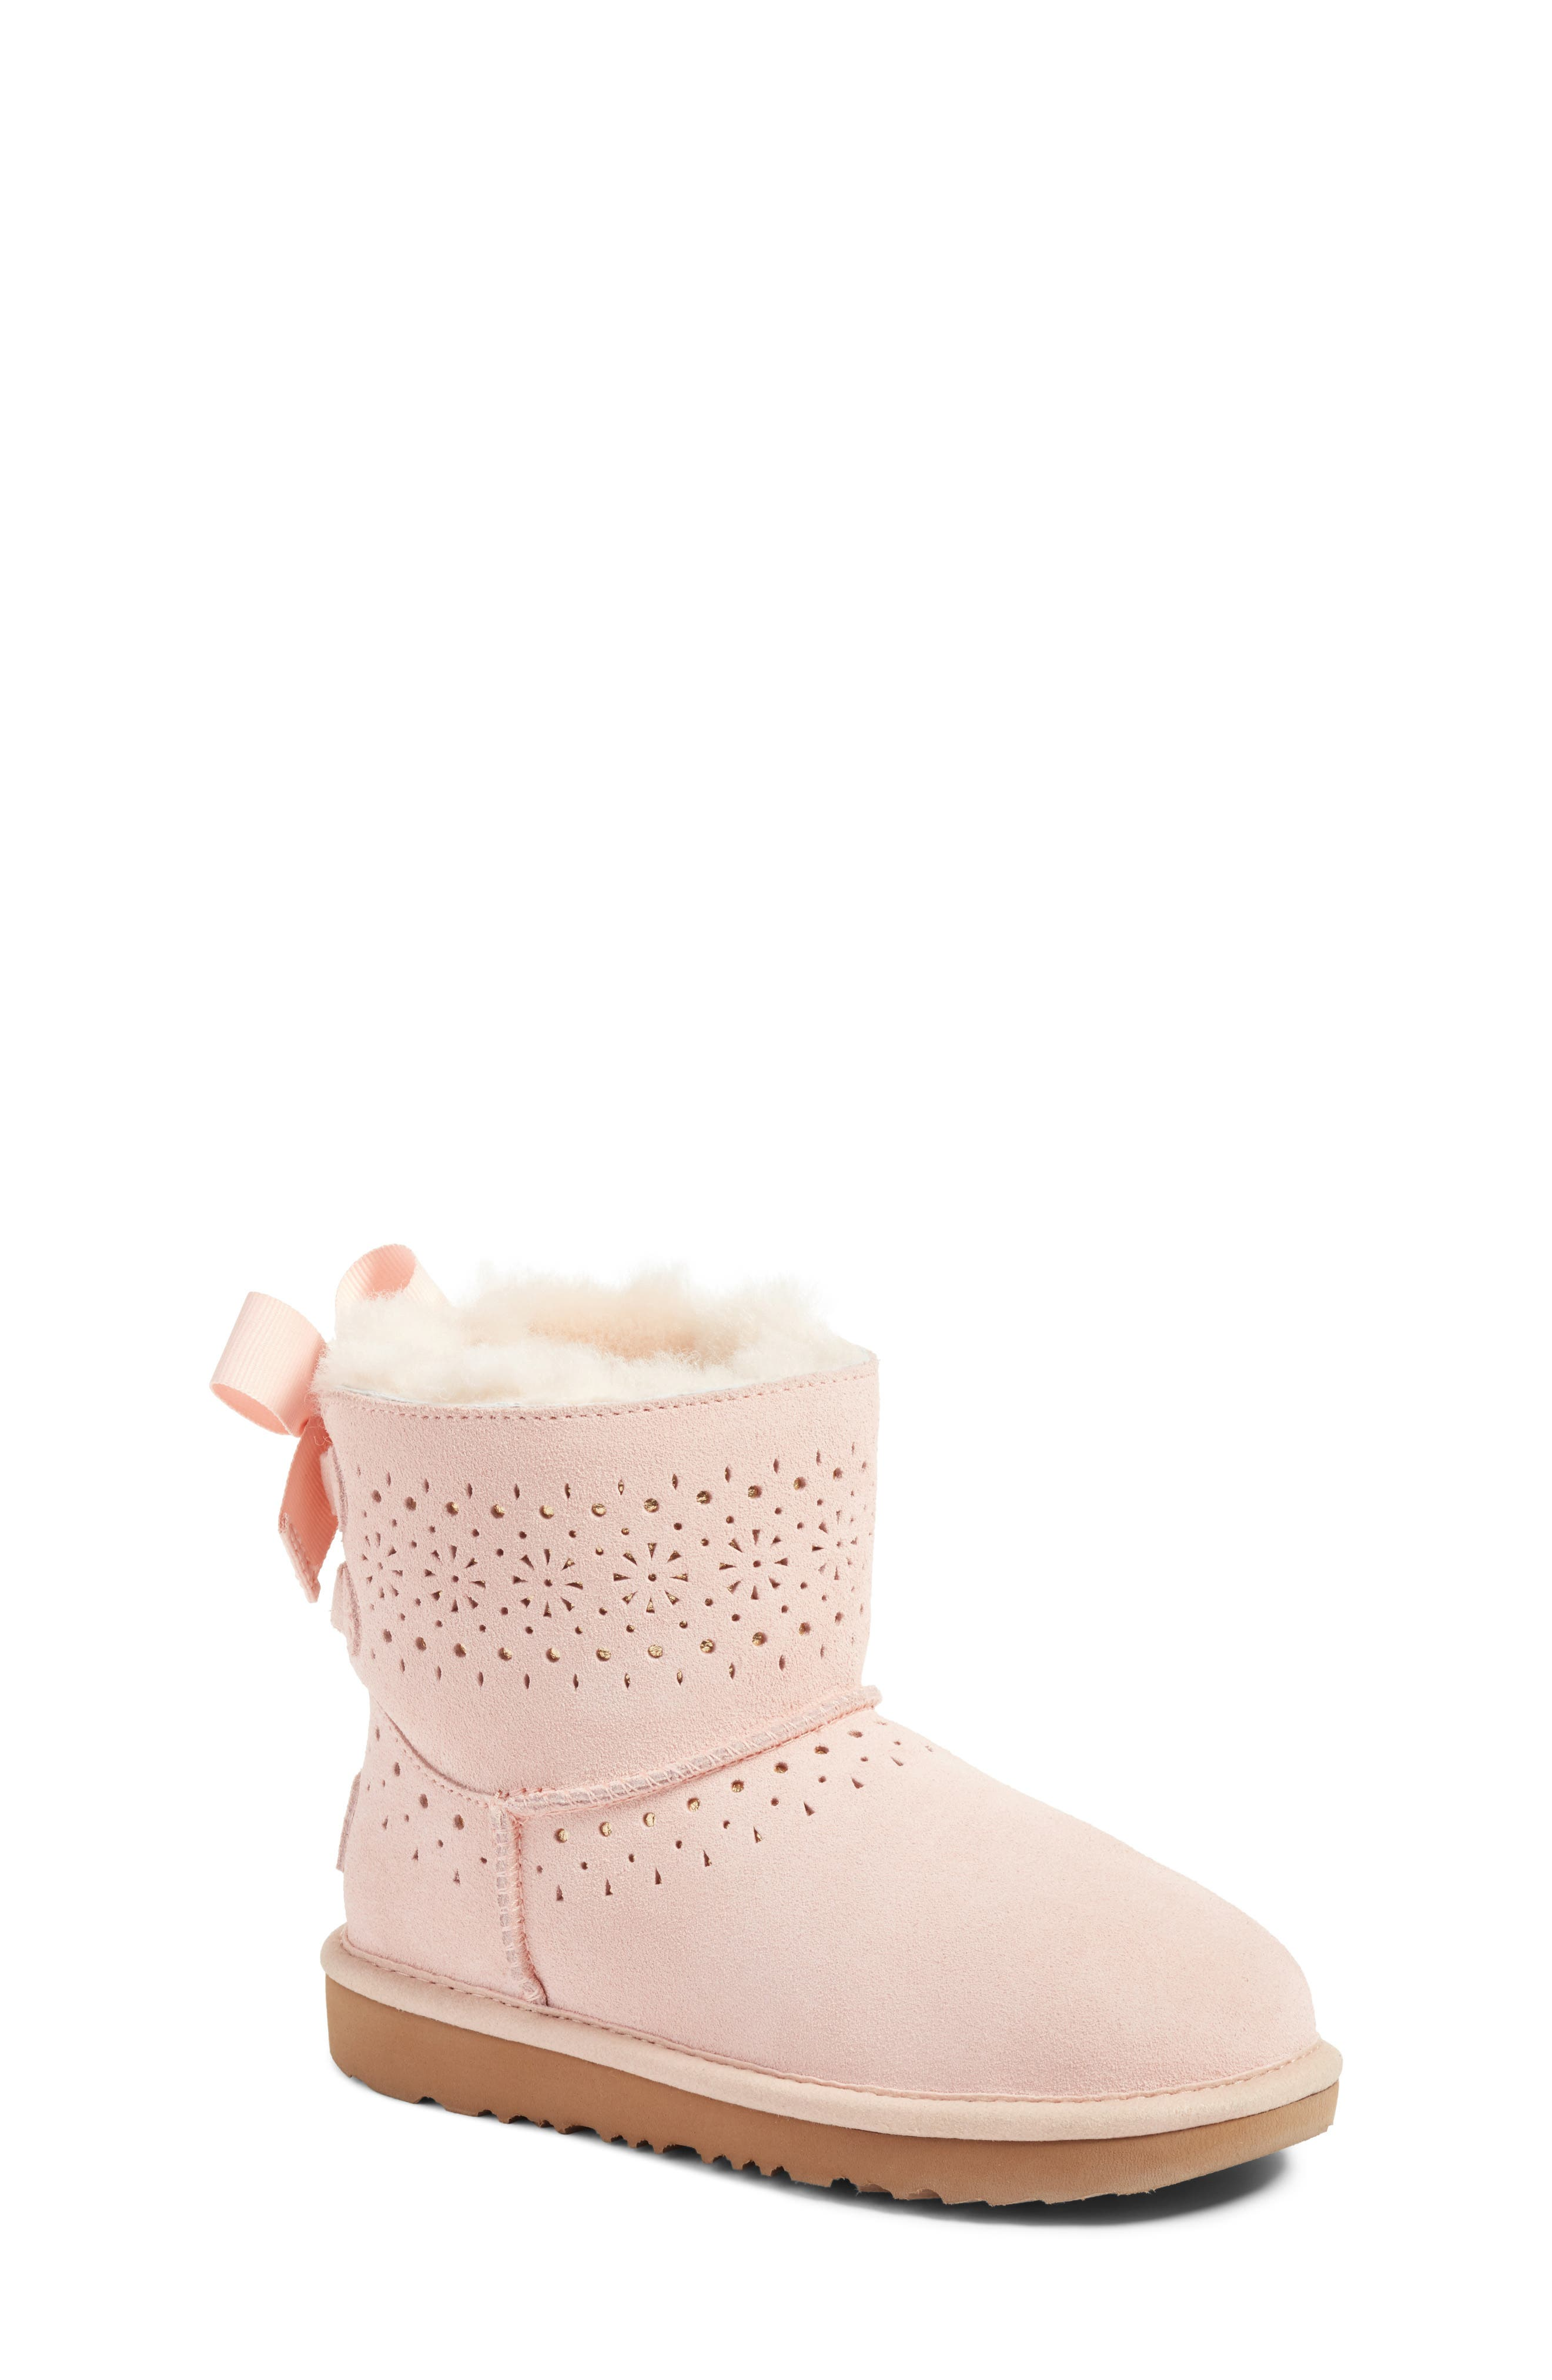 Dae Perforated Tie Back Boot,                         Main,                         color, Baby Pink